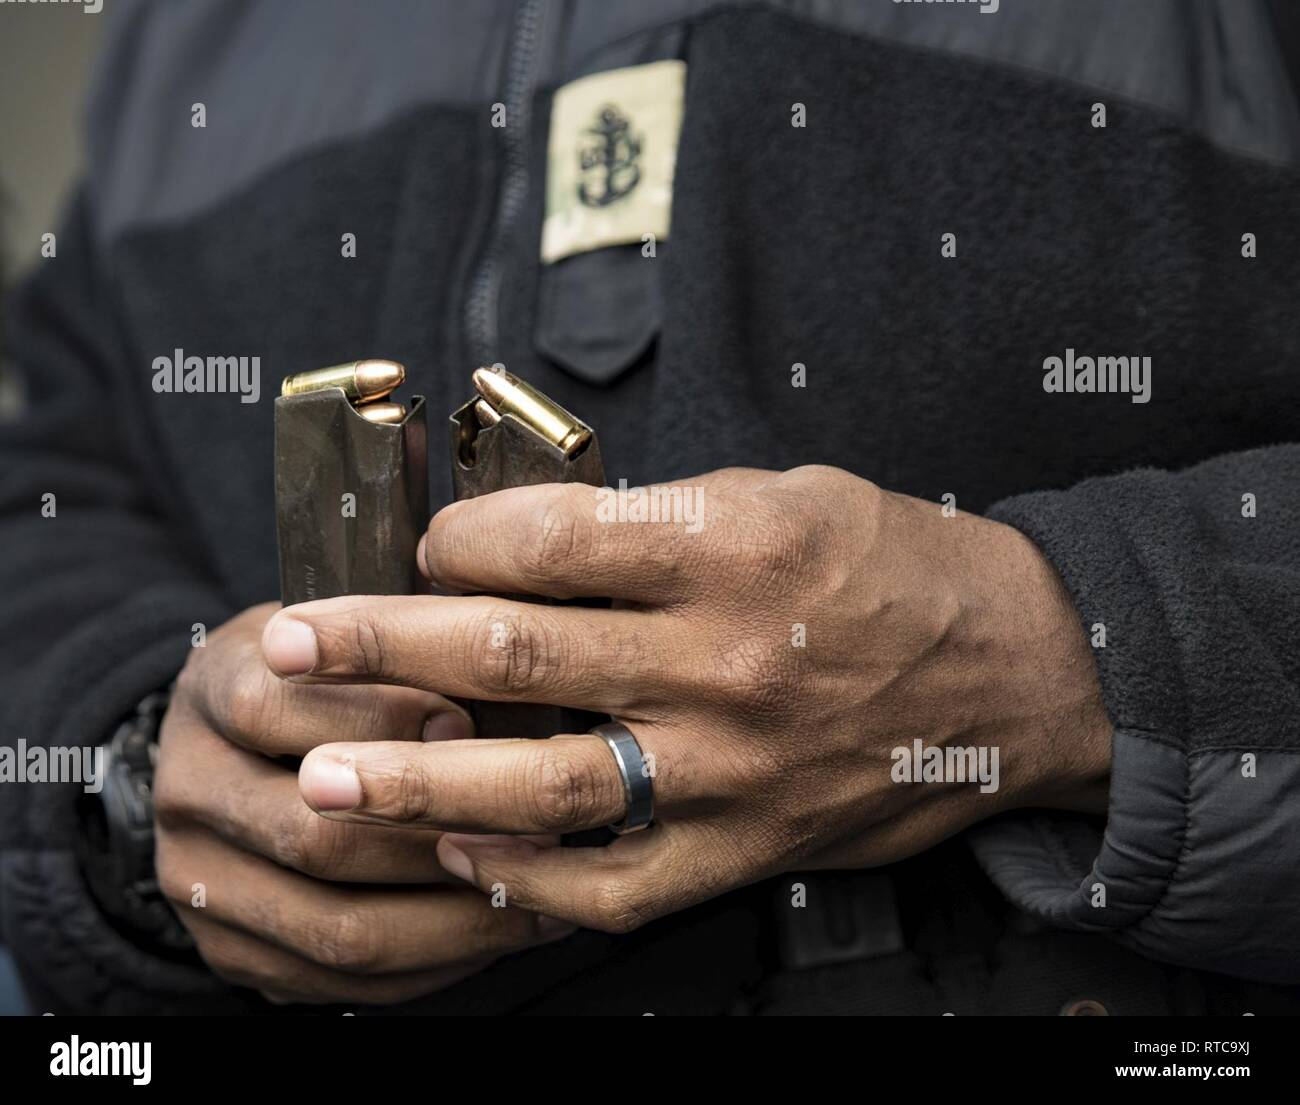 PHILIPPINE SEA (Feb. 12, 2019) - Chief Intelligence Specialist Robert Campbell, from Waldorf, Maryland, prepares ammunition for a live fire exercise aboard the amphibious assault ship USS Wasp (LHD 1). Wasp, flagship of Wasp Amphibious Ready Group, with embarked 31st Marine Expeditionary Unit, is operating in the Indo-Pacific region to enhance interoperability with partners and serve as a ready-response force for any type of contingency. - Stock Image